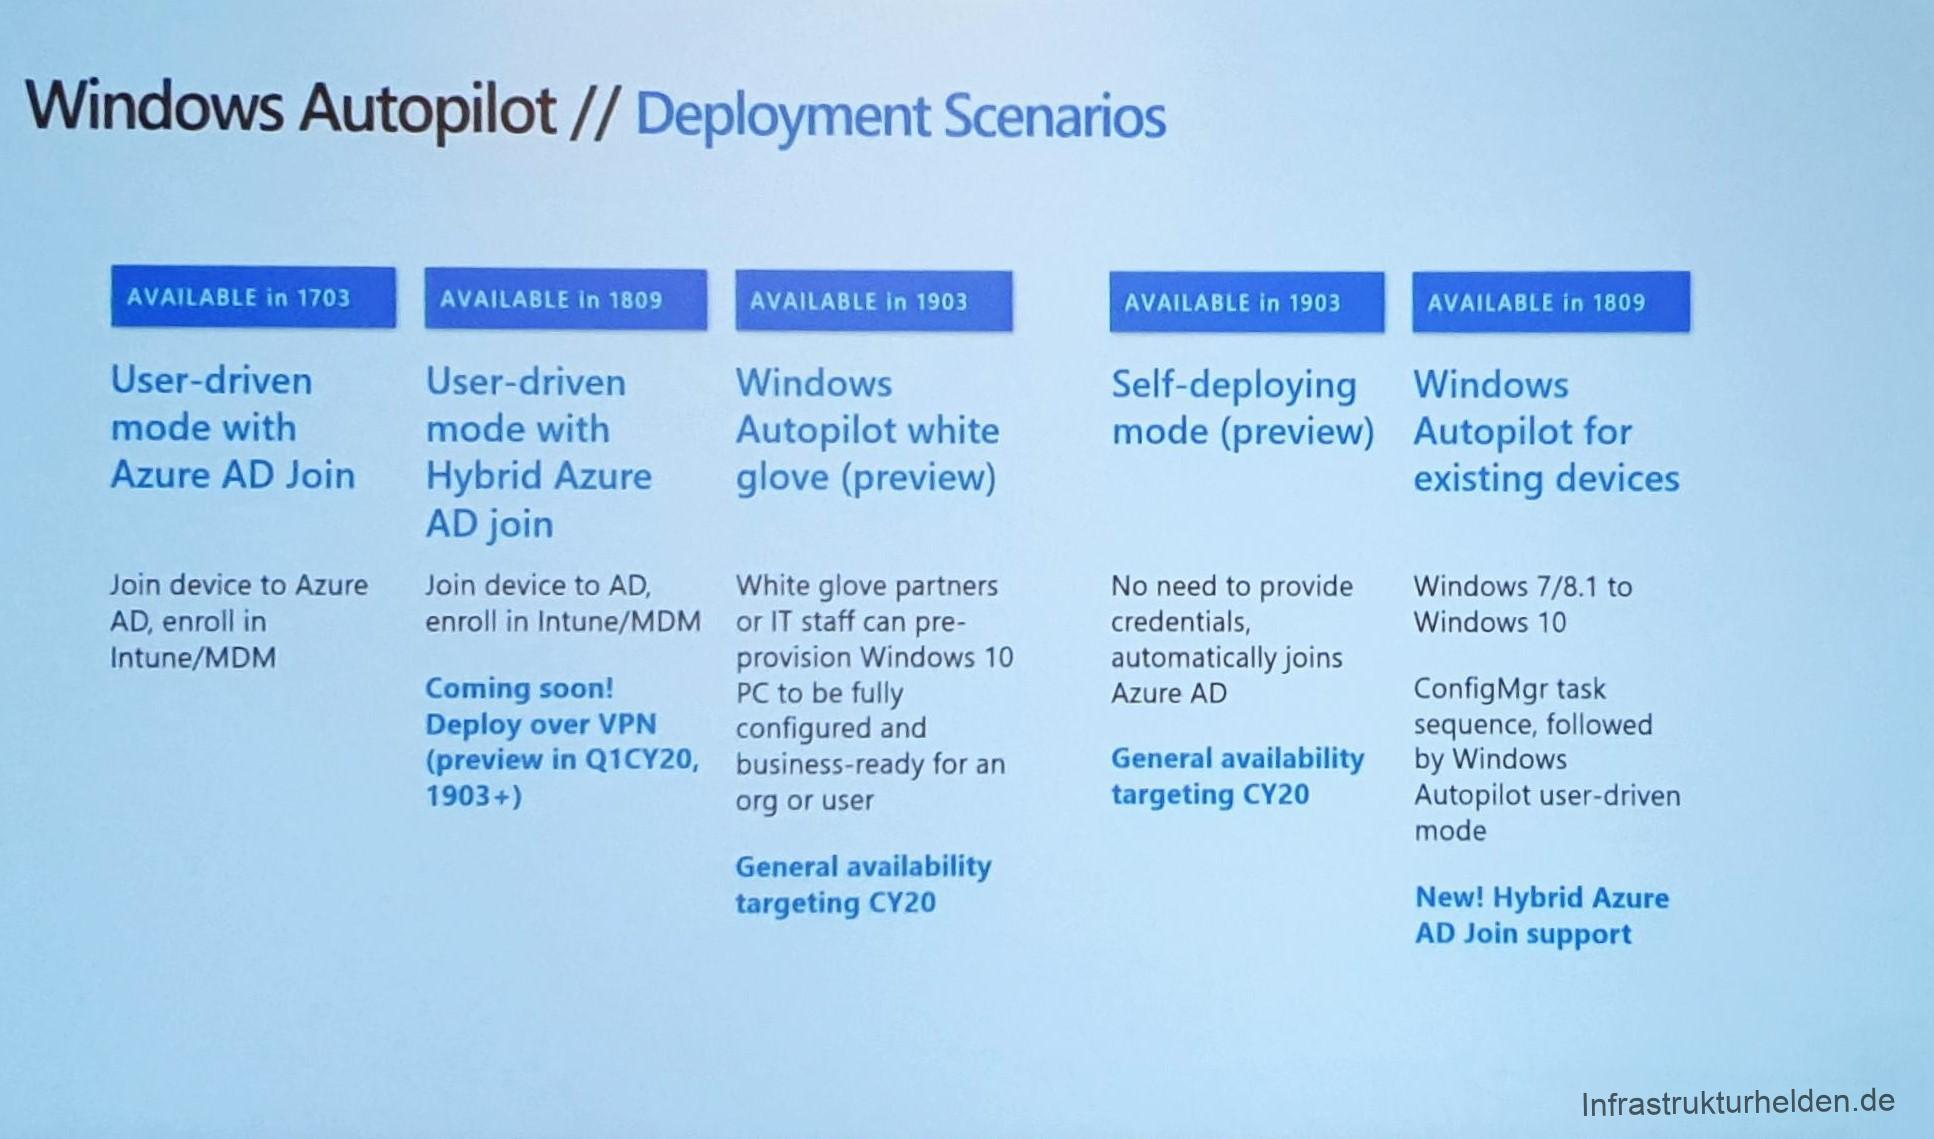 Computergenerierter Alternativtext: Windows Autopilot // Deployment Scenarios AVAILABLE in 1703 User-driven mode With Azure AD Join Join device to Azure AD, enroll in Intune/MDM AVAILABLE in 1809 User-driven mode With Hybrid Azure AD join Join device to AD, enroll in Intune/MDM Coming soon! Deploy over VPN (preview in QICY20, 1903+) AVAILABLE in 1903 Windows Autopilot white glove (preview) White glove partners or IT staff can pre- provision Windows 10 PC to be fully configured and business-ready for an org or user General availability targeting CY20 AVAILABLE in 1903 Self-deploying mode (preview) No need to provide credentials, automatically joins Azure AD General availability targeting CY20 AVAILABLE in 1809 Windows Autopilot for existing devices Windows 7/8.1 to Windows 10 ConfigMgr task sequence, followed by Windows Autopilot user-driven mode New! Hybrid Azure AD Join support